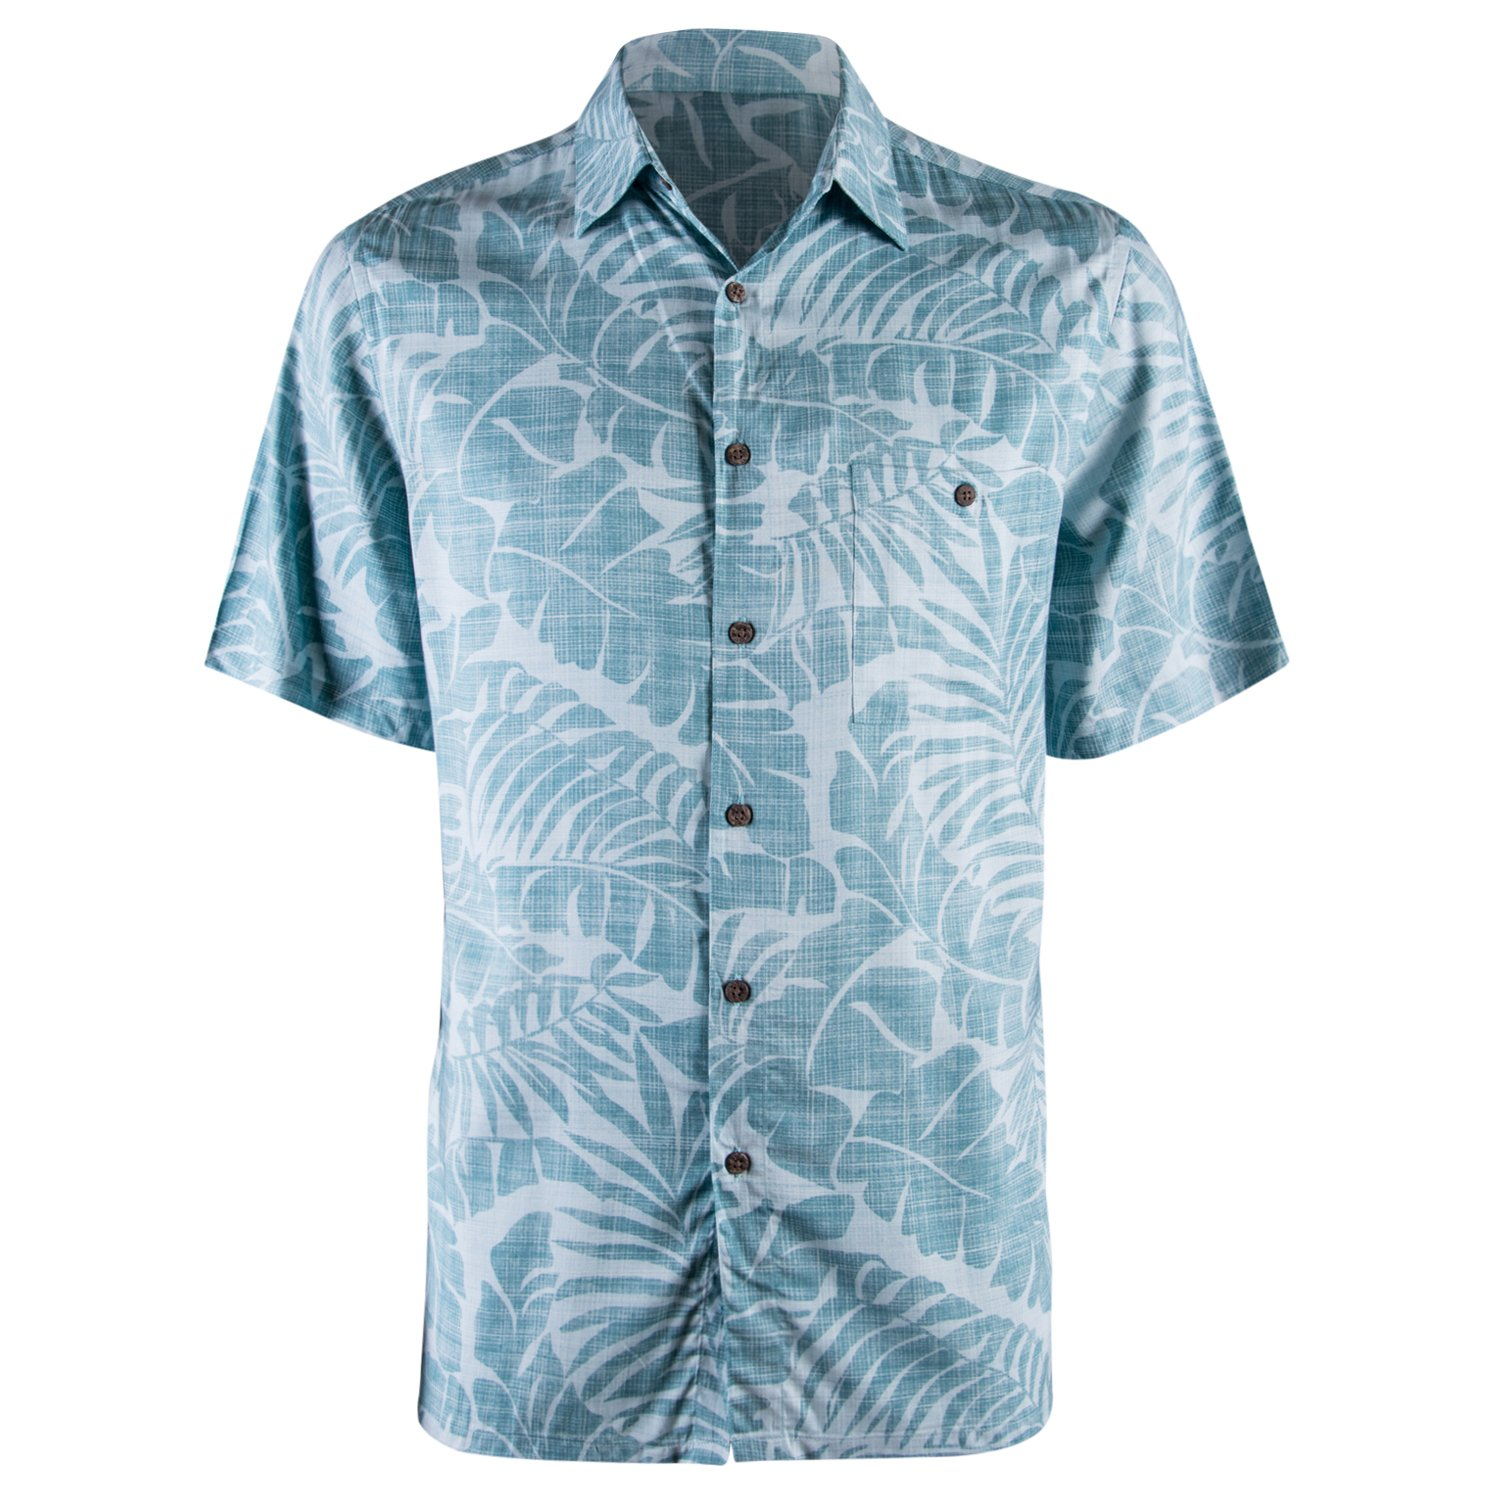 a3aa49b7edc0 Galleon - Campia Men s Rayon Print Shirt (Blue Ocean 17